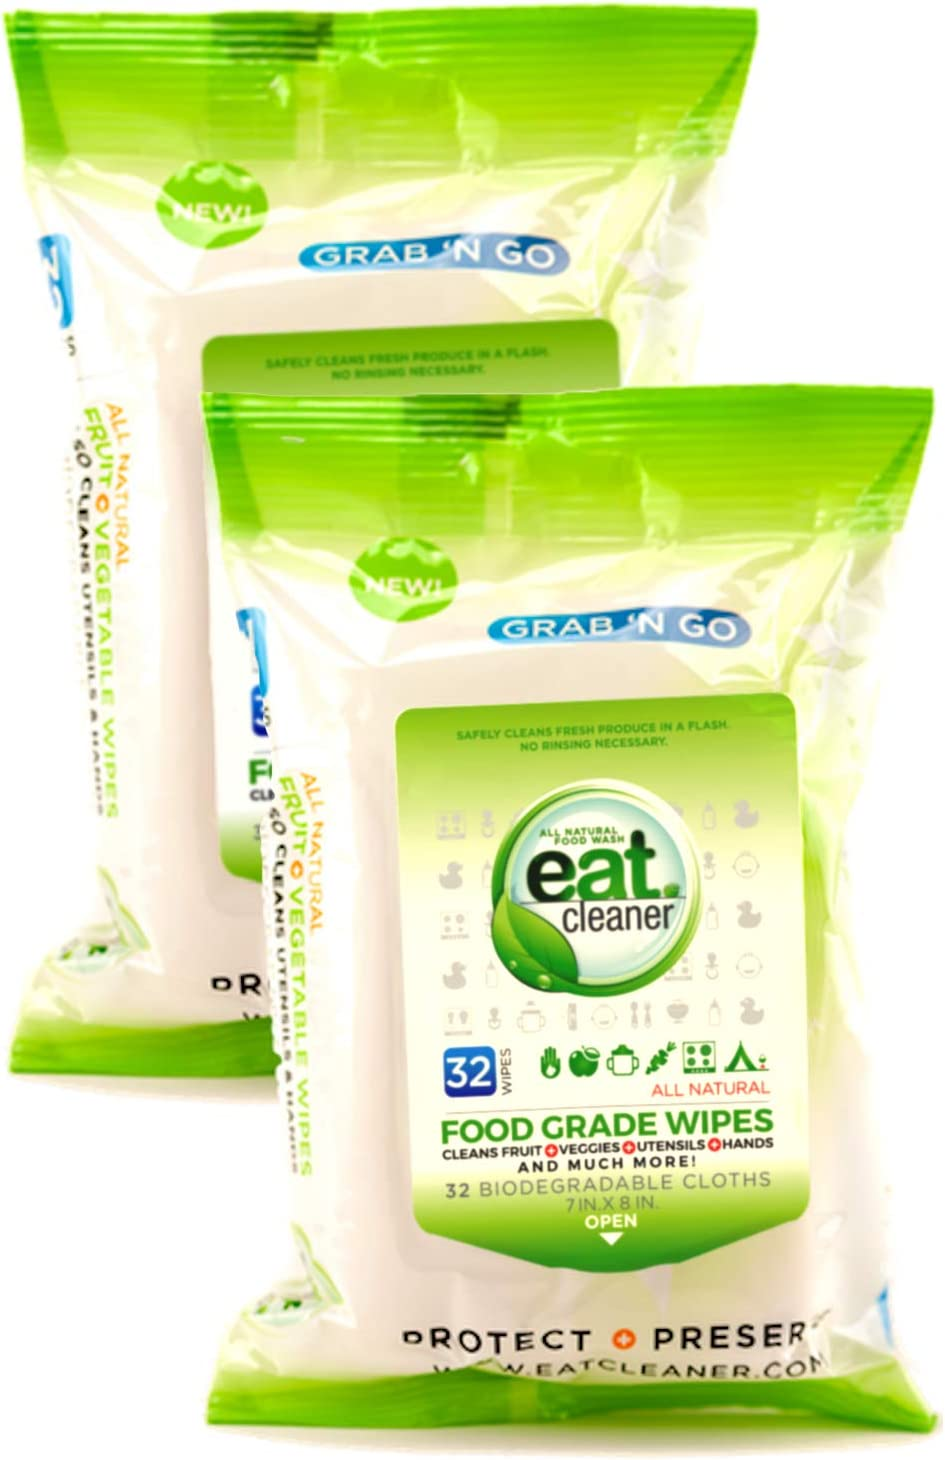 Eat Cleaner Food Grade Wipes - Your to-GO for All Your Green Cleaning Needs Where There is NO Water- 32CT. 2PACK